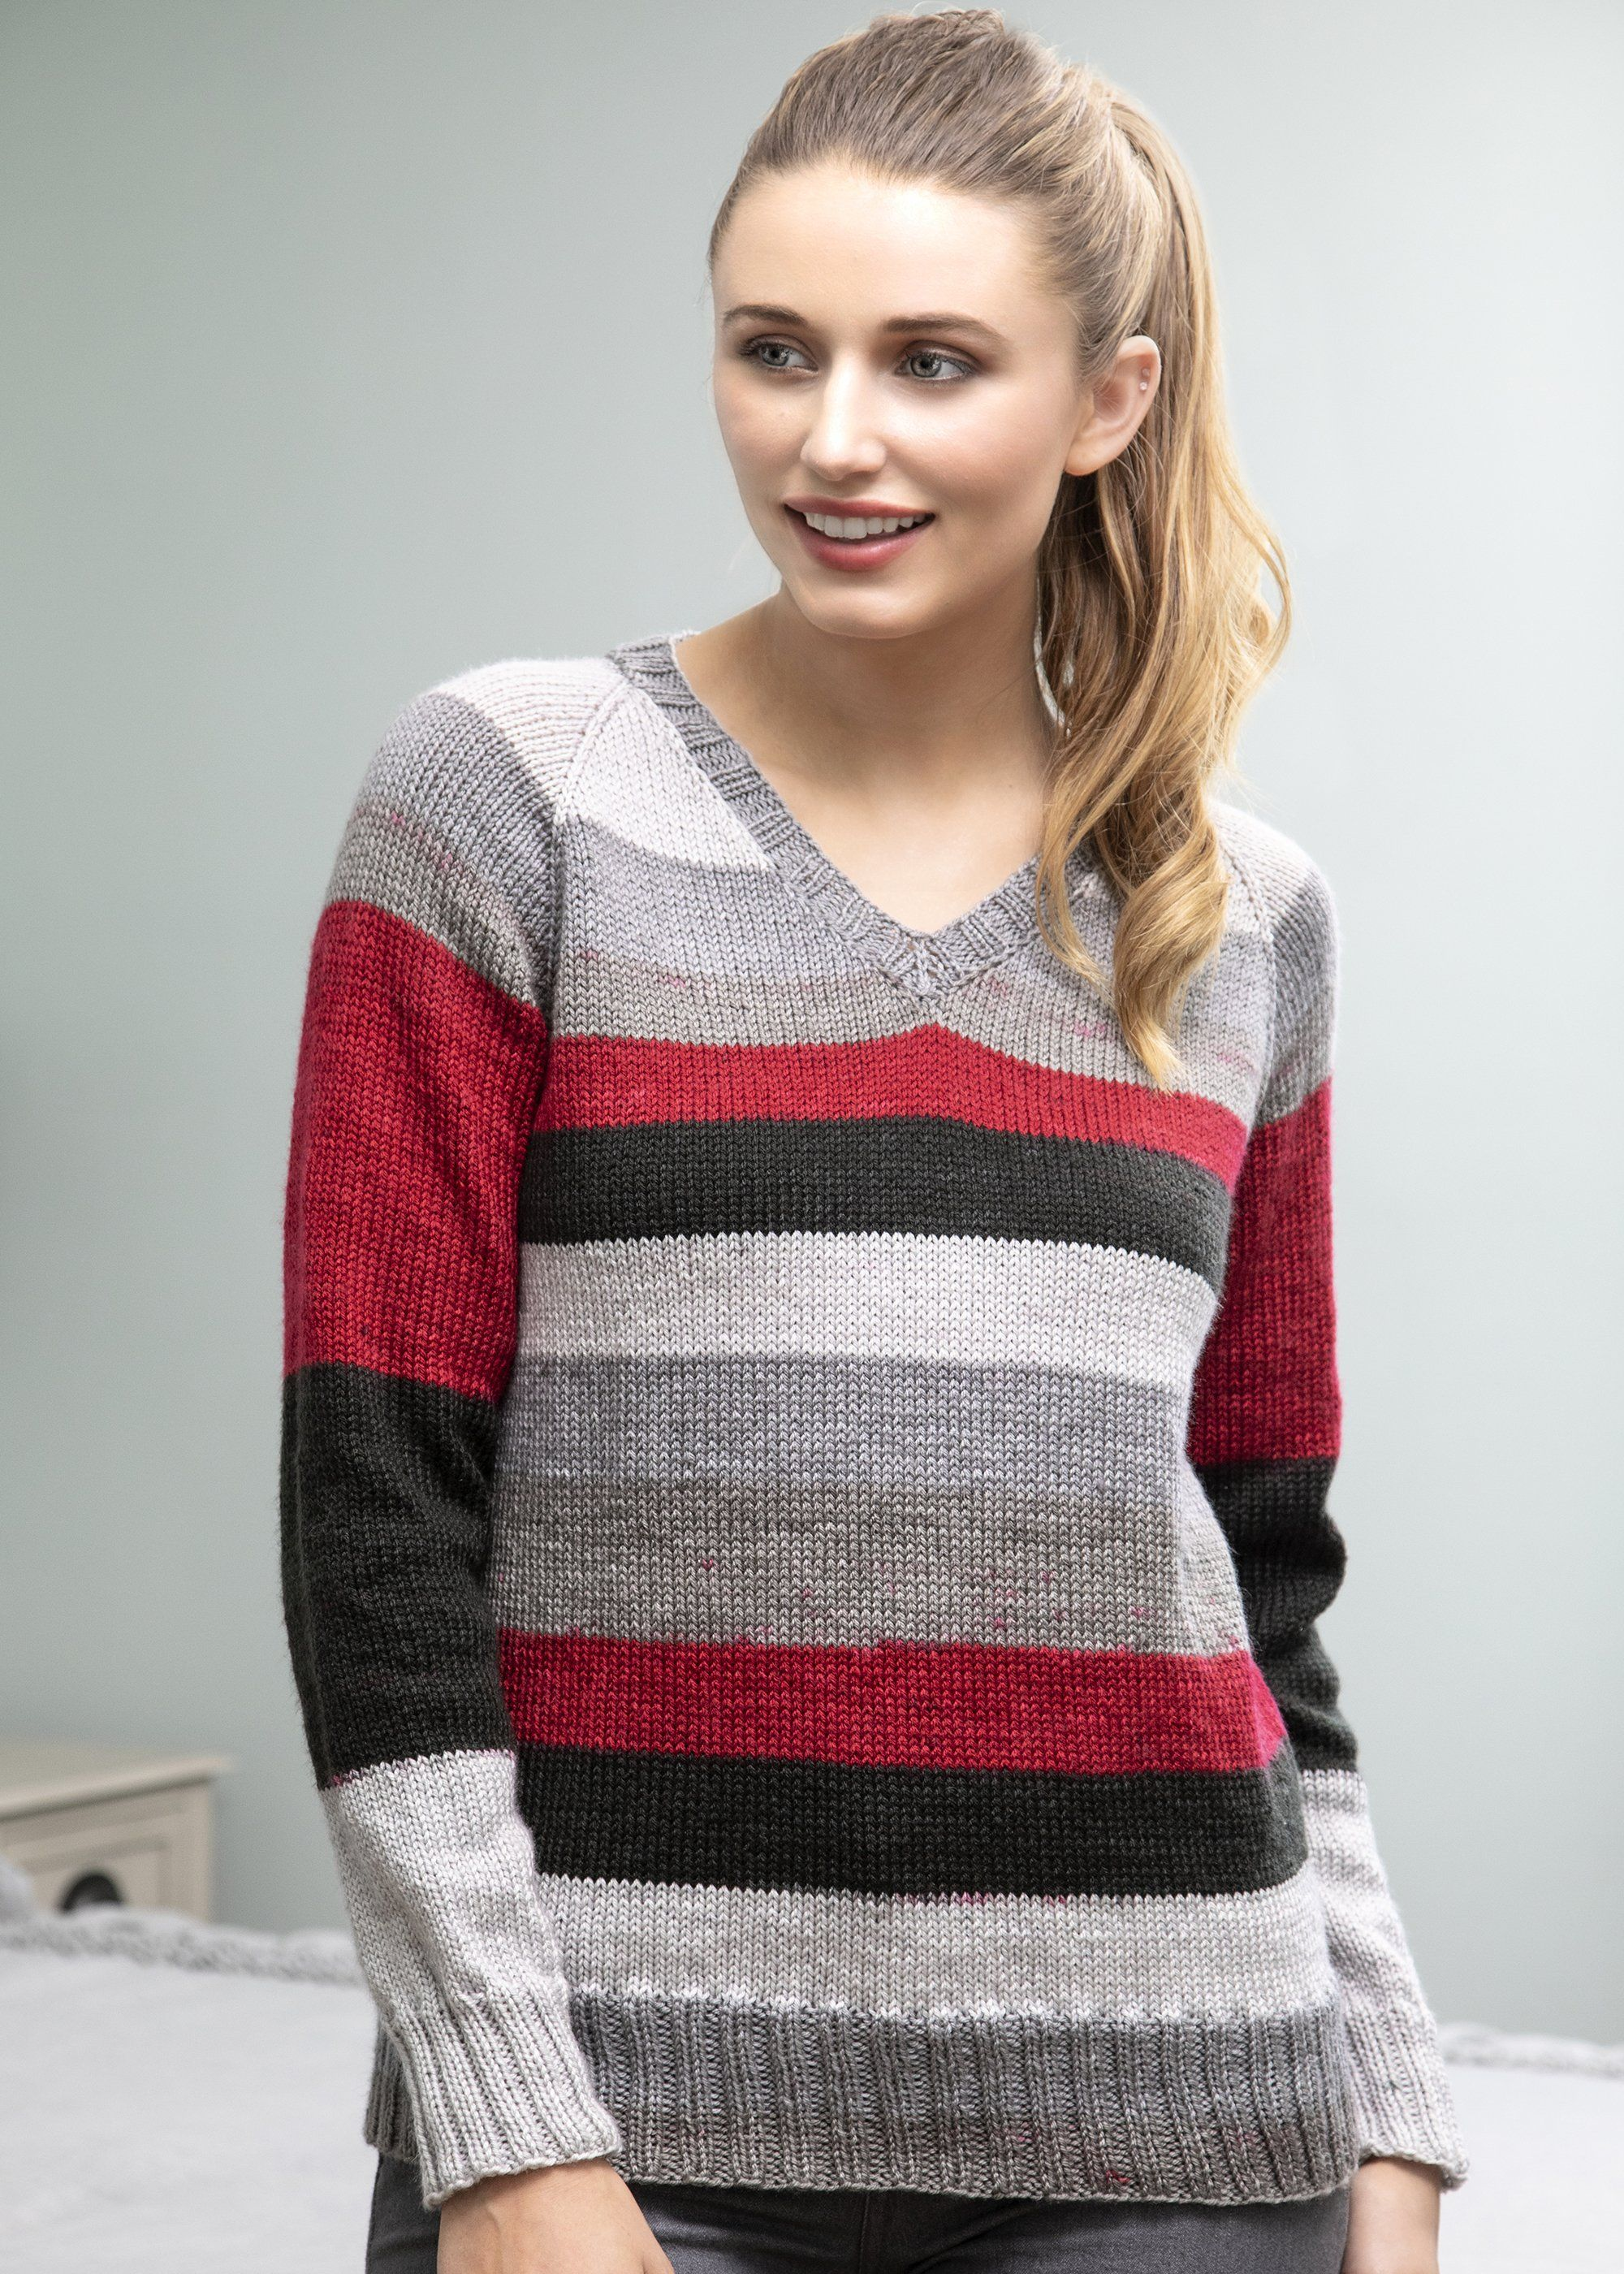 Courier Pullover in 2020 | Knitting patterns, Sweater ...